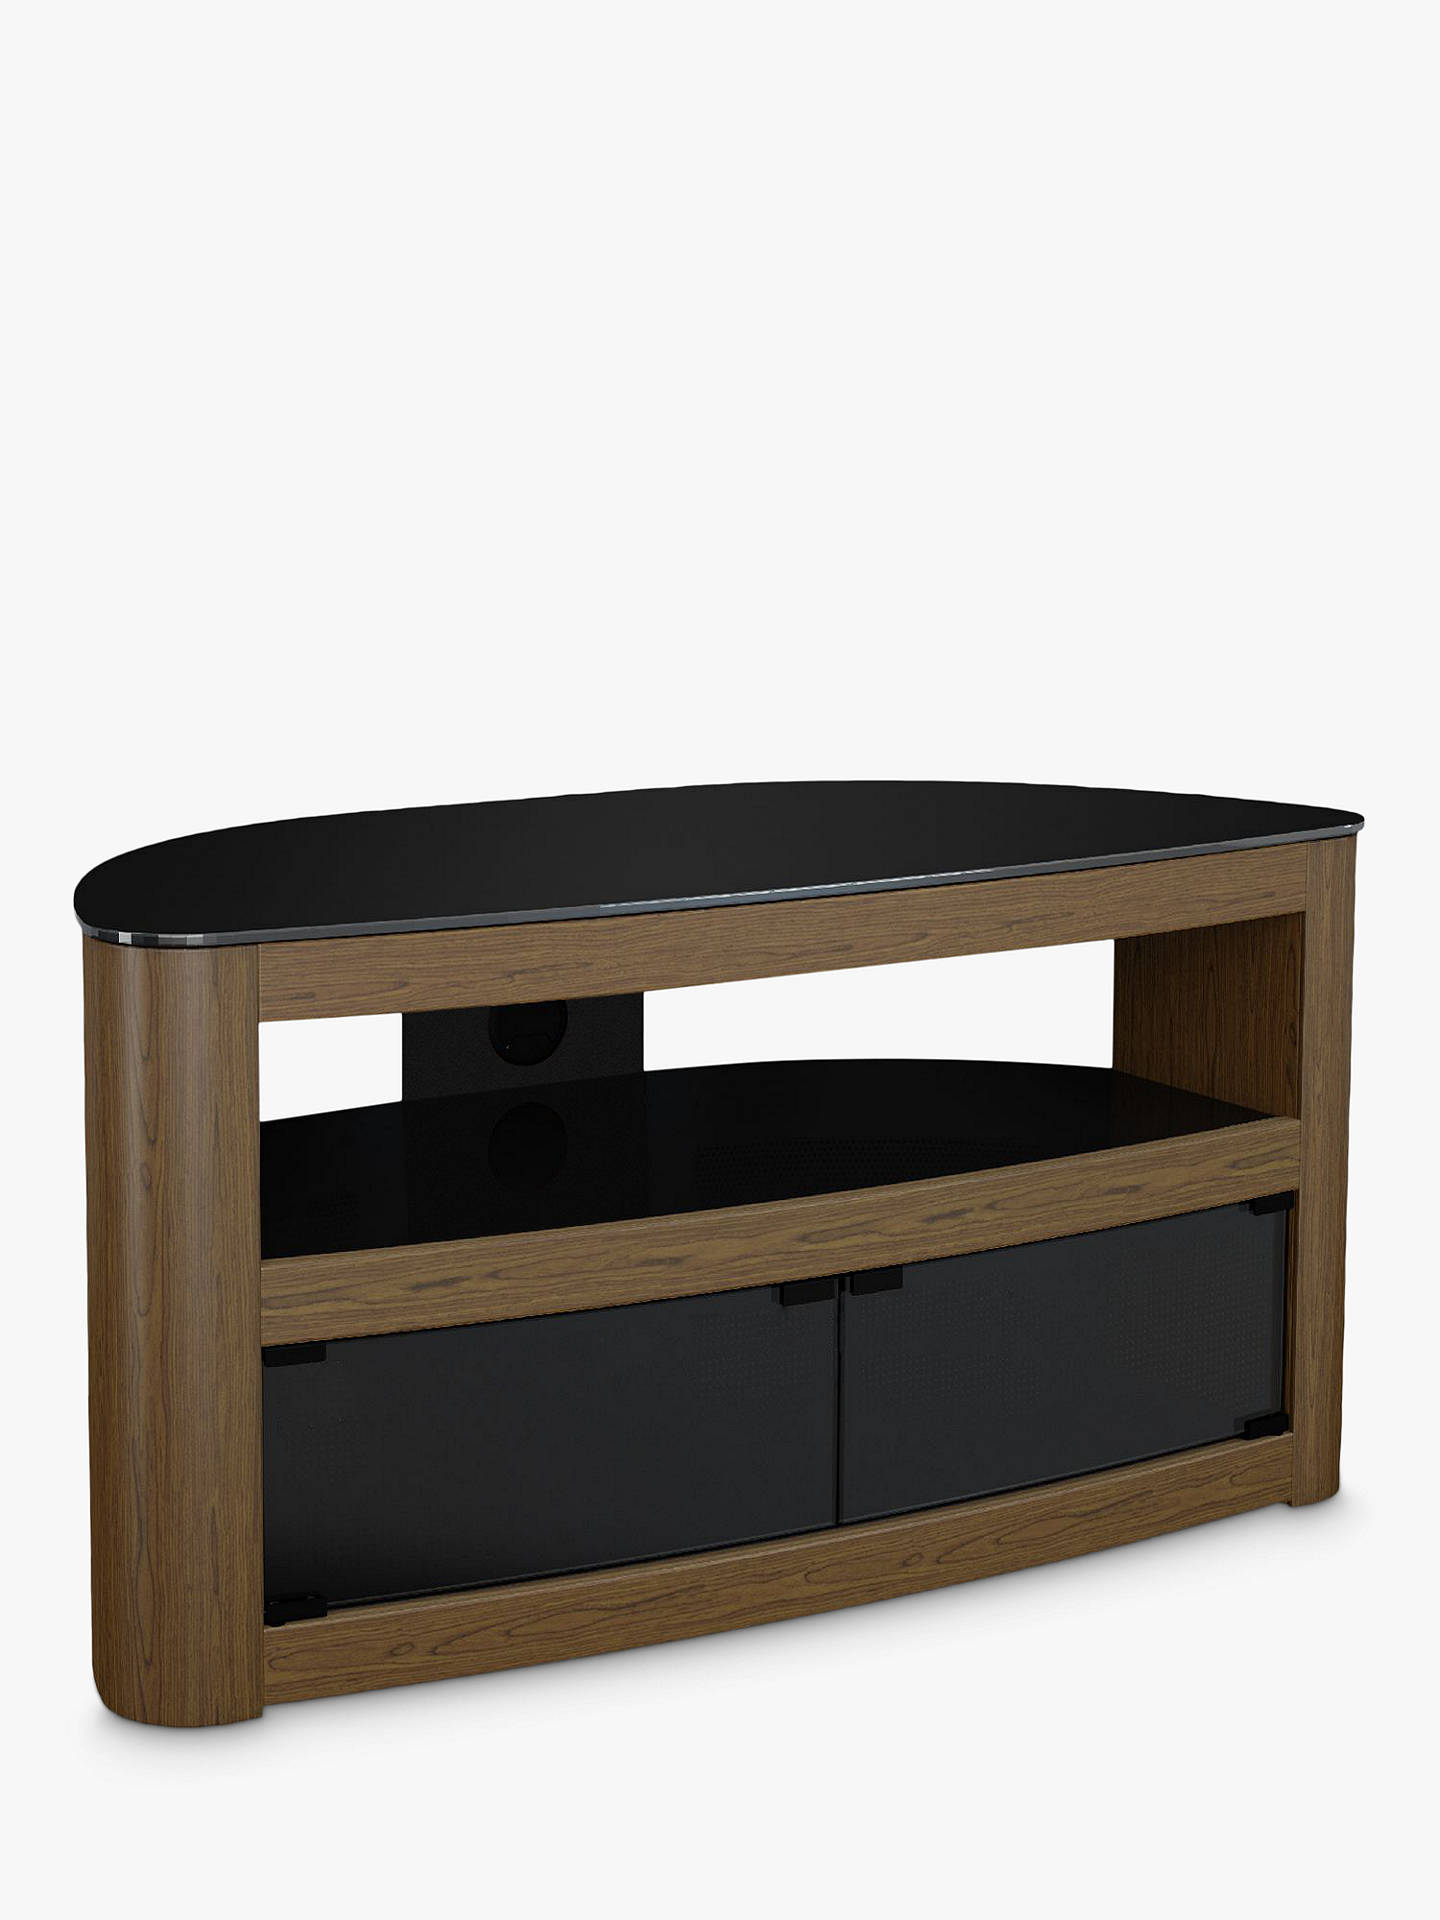 "Buy AVF Affinity Premium Burghley 1000 TV Stand For TVs Up To 50"", Walnut Online at johnlewis.com"